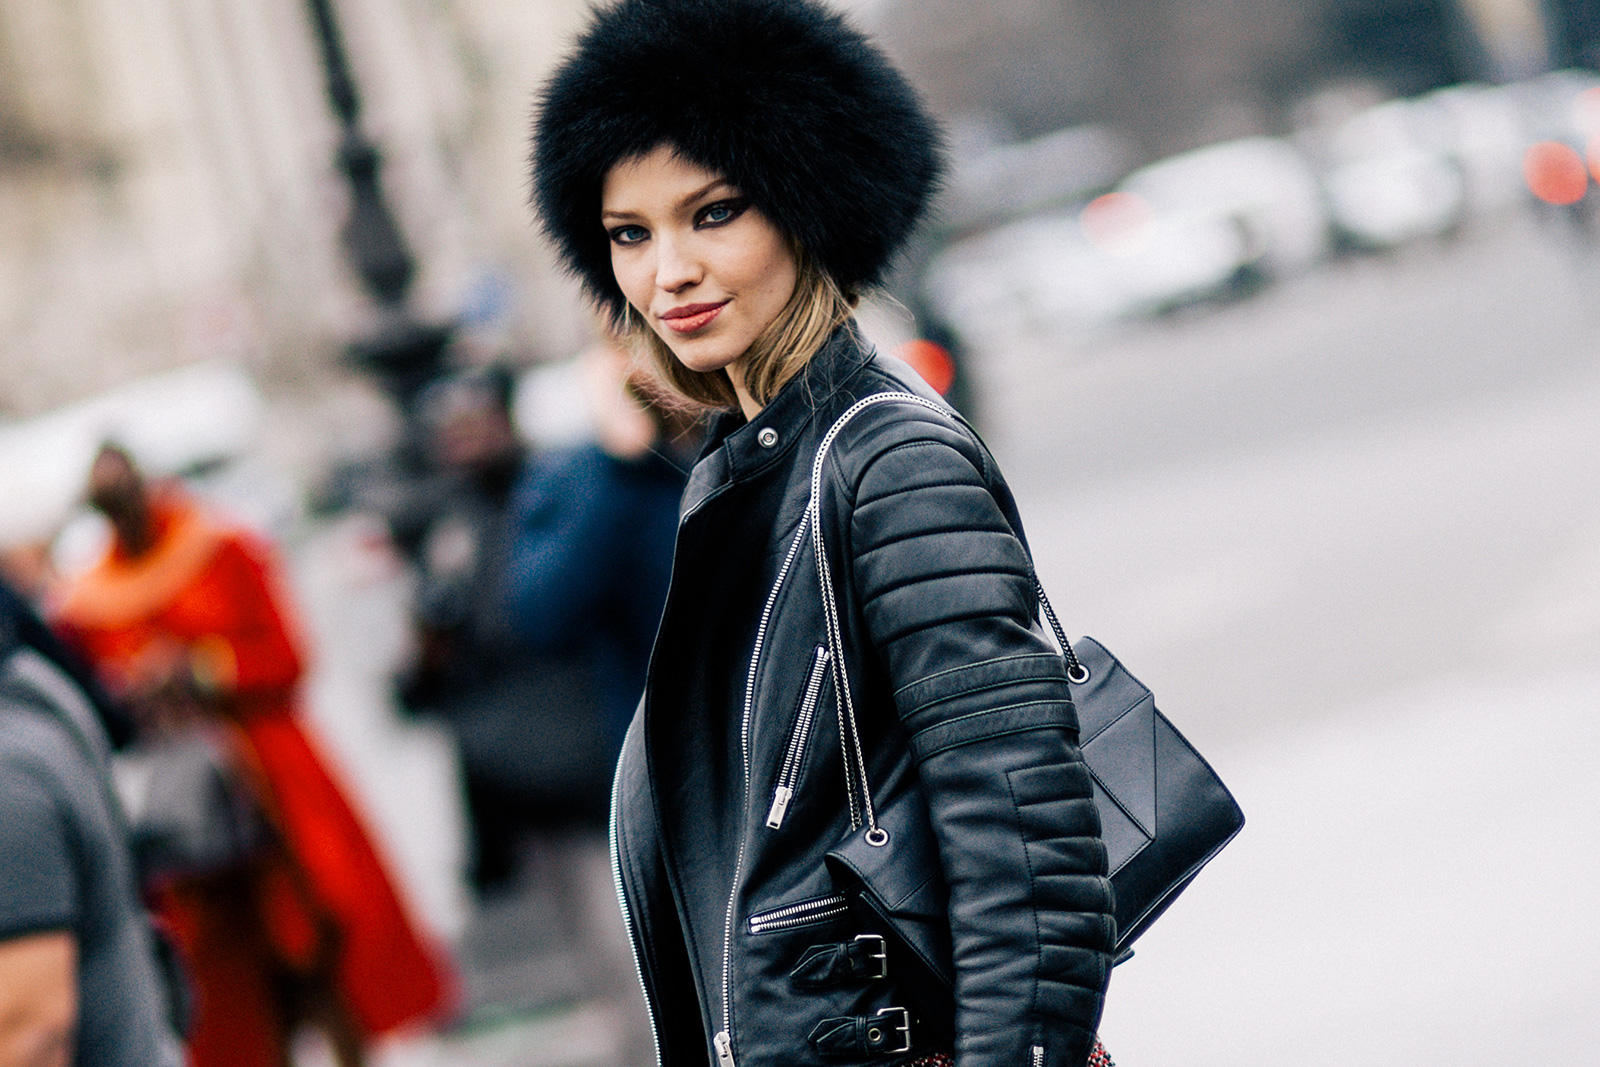 fur hats and hairstyles for cold winter 2017